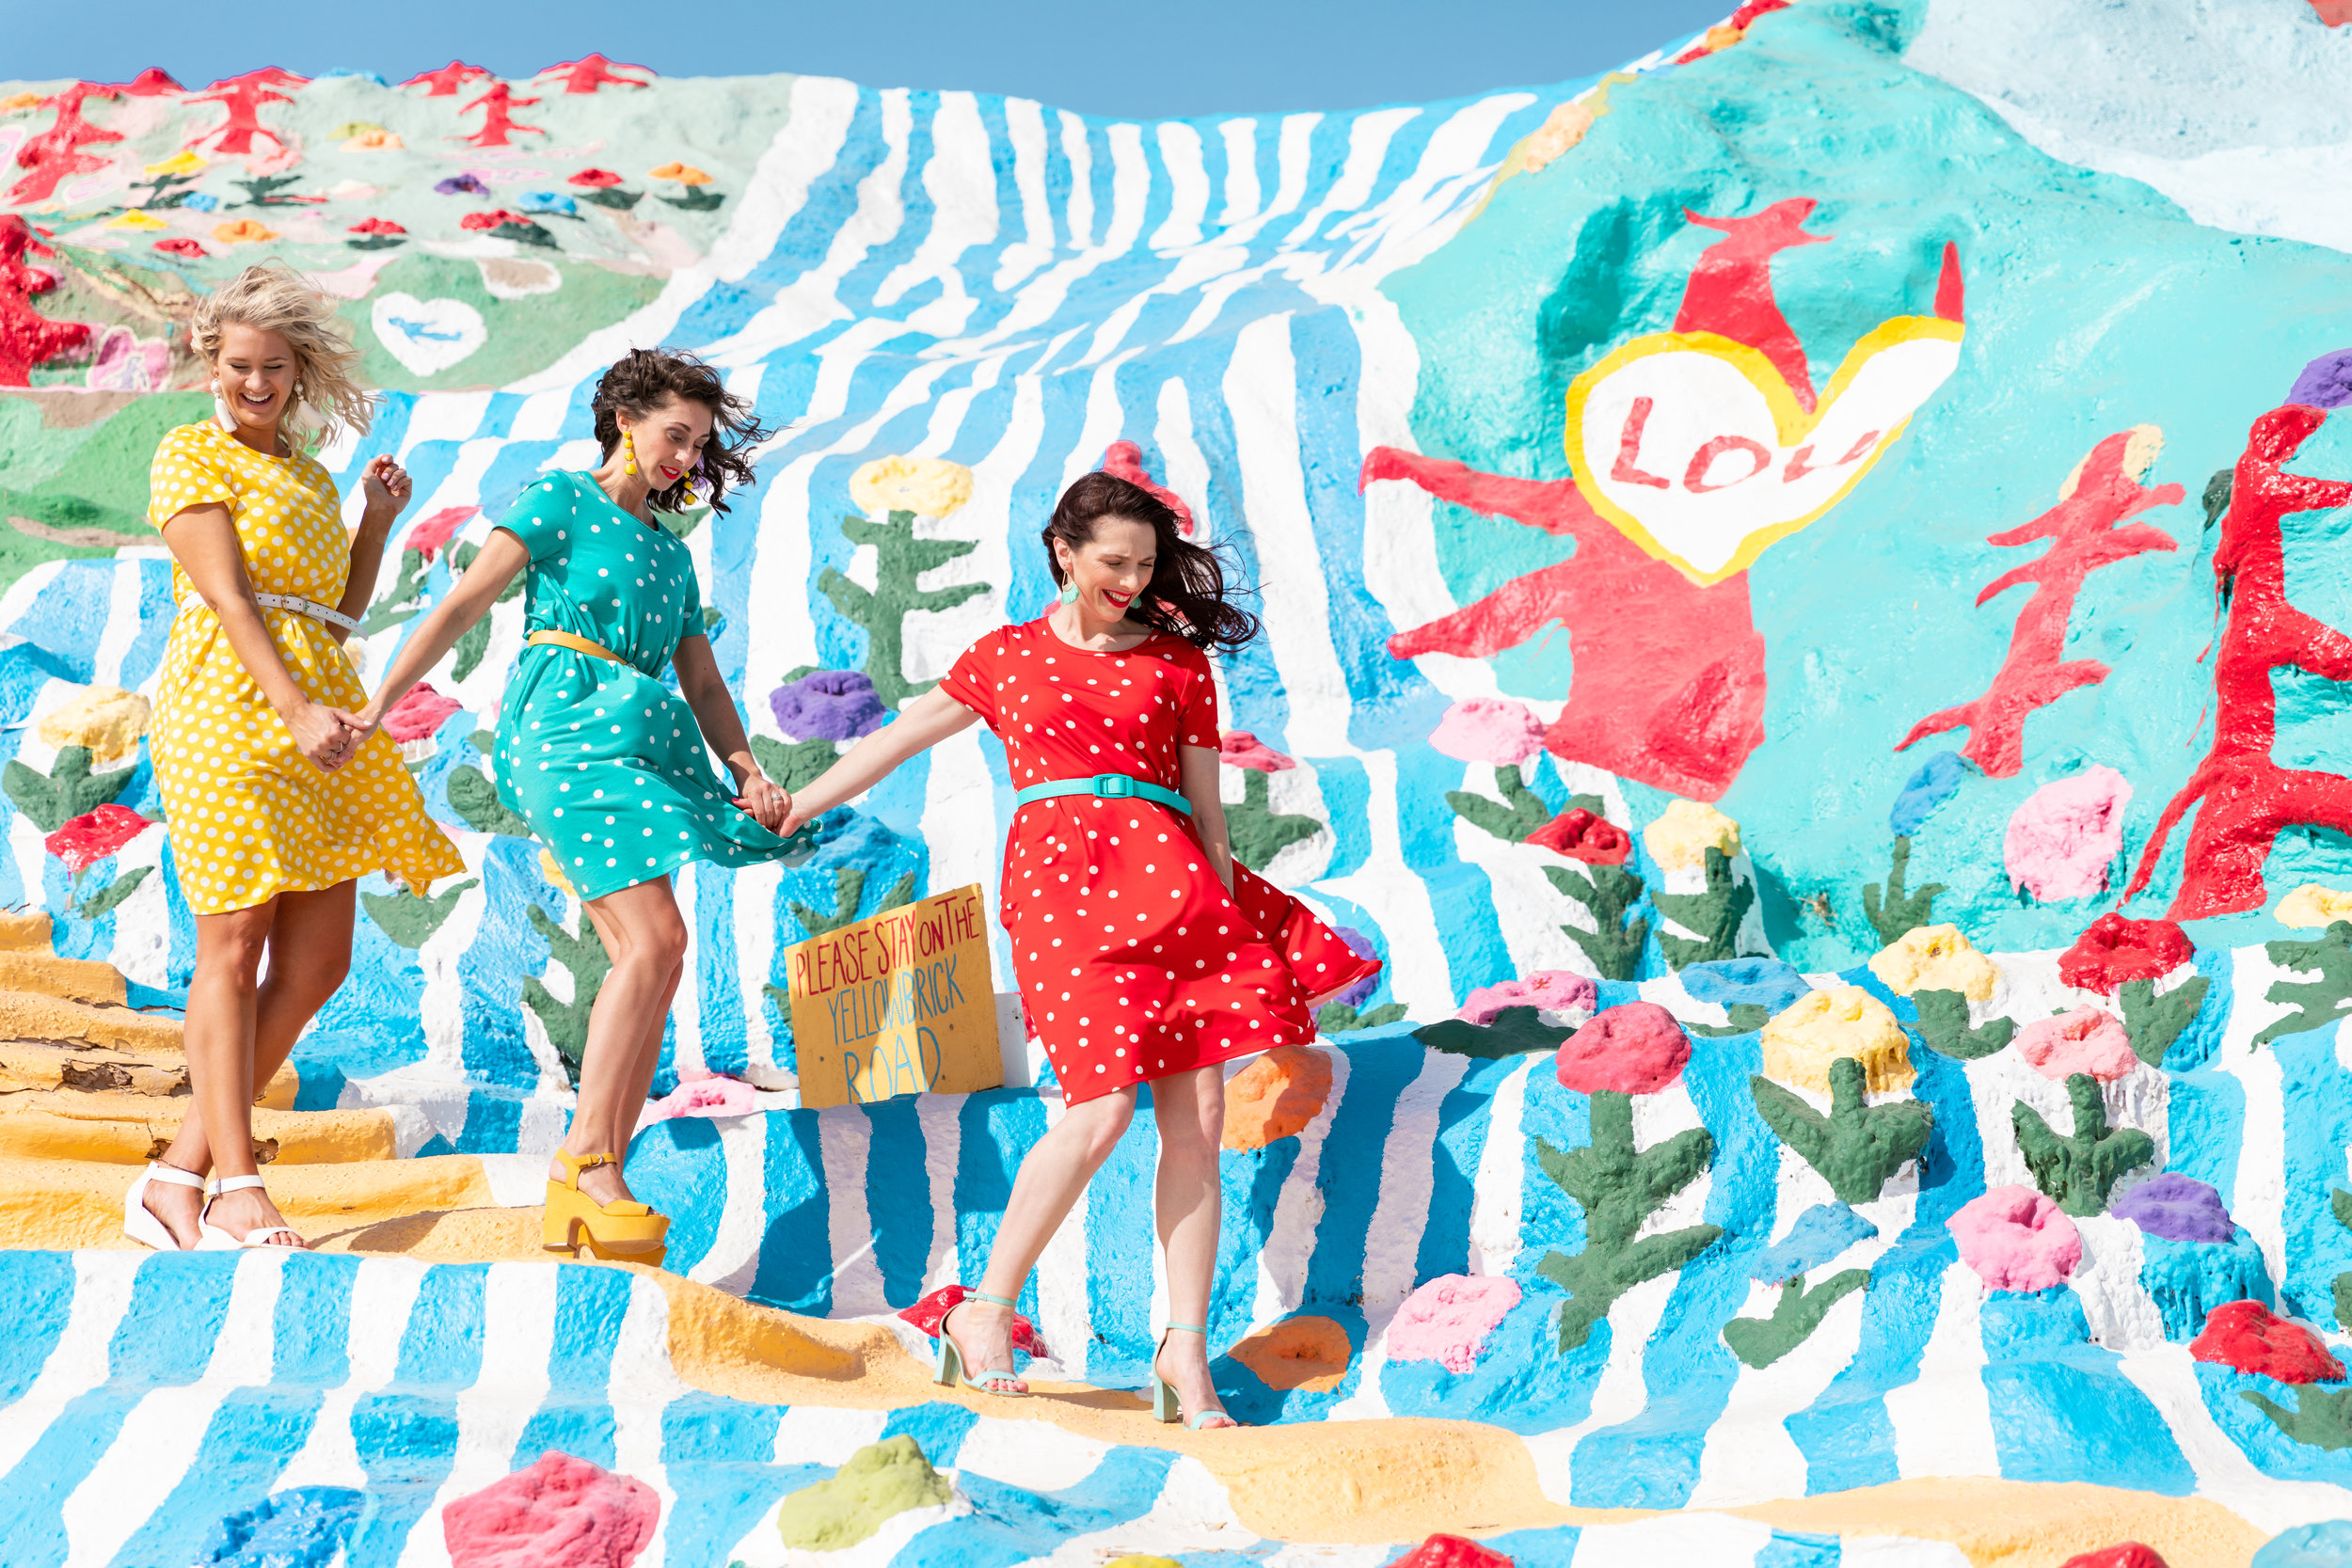 Behind the Scenes with the LuLaRoe Content Creation T.E.A.M. -